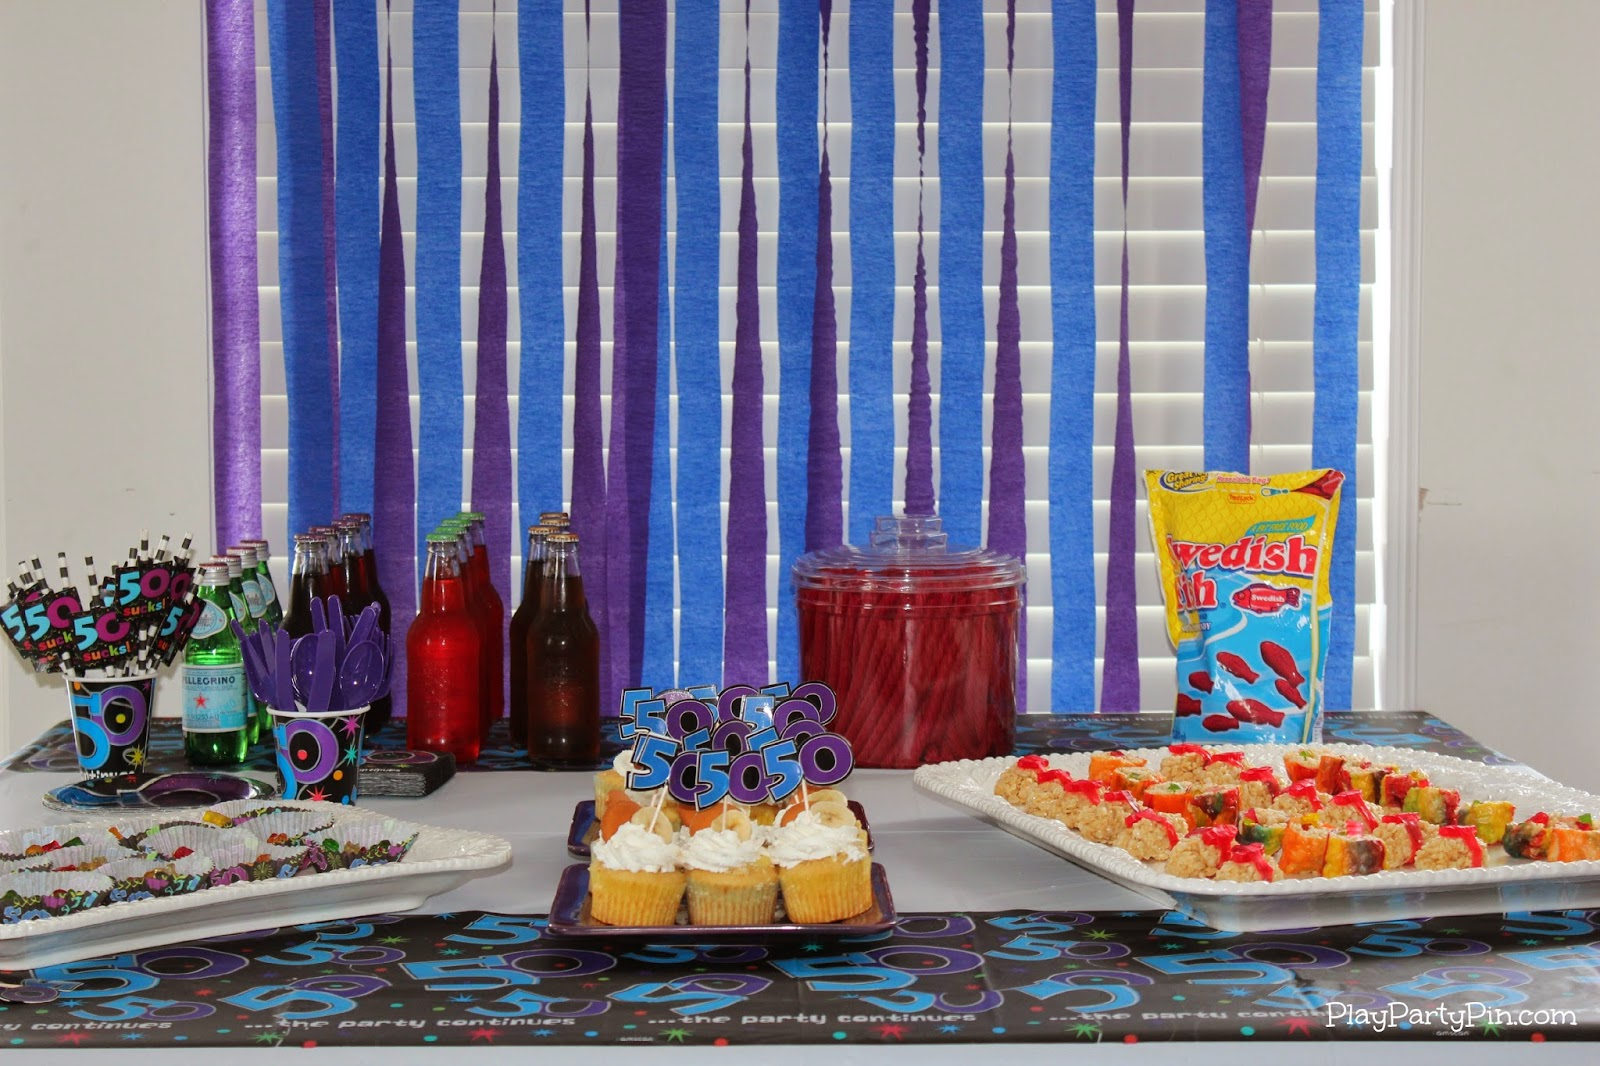 50th birthday party games and ideas by playpartypincom party games